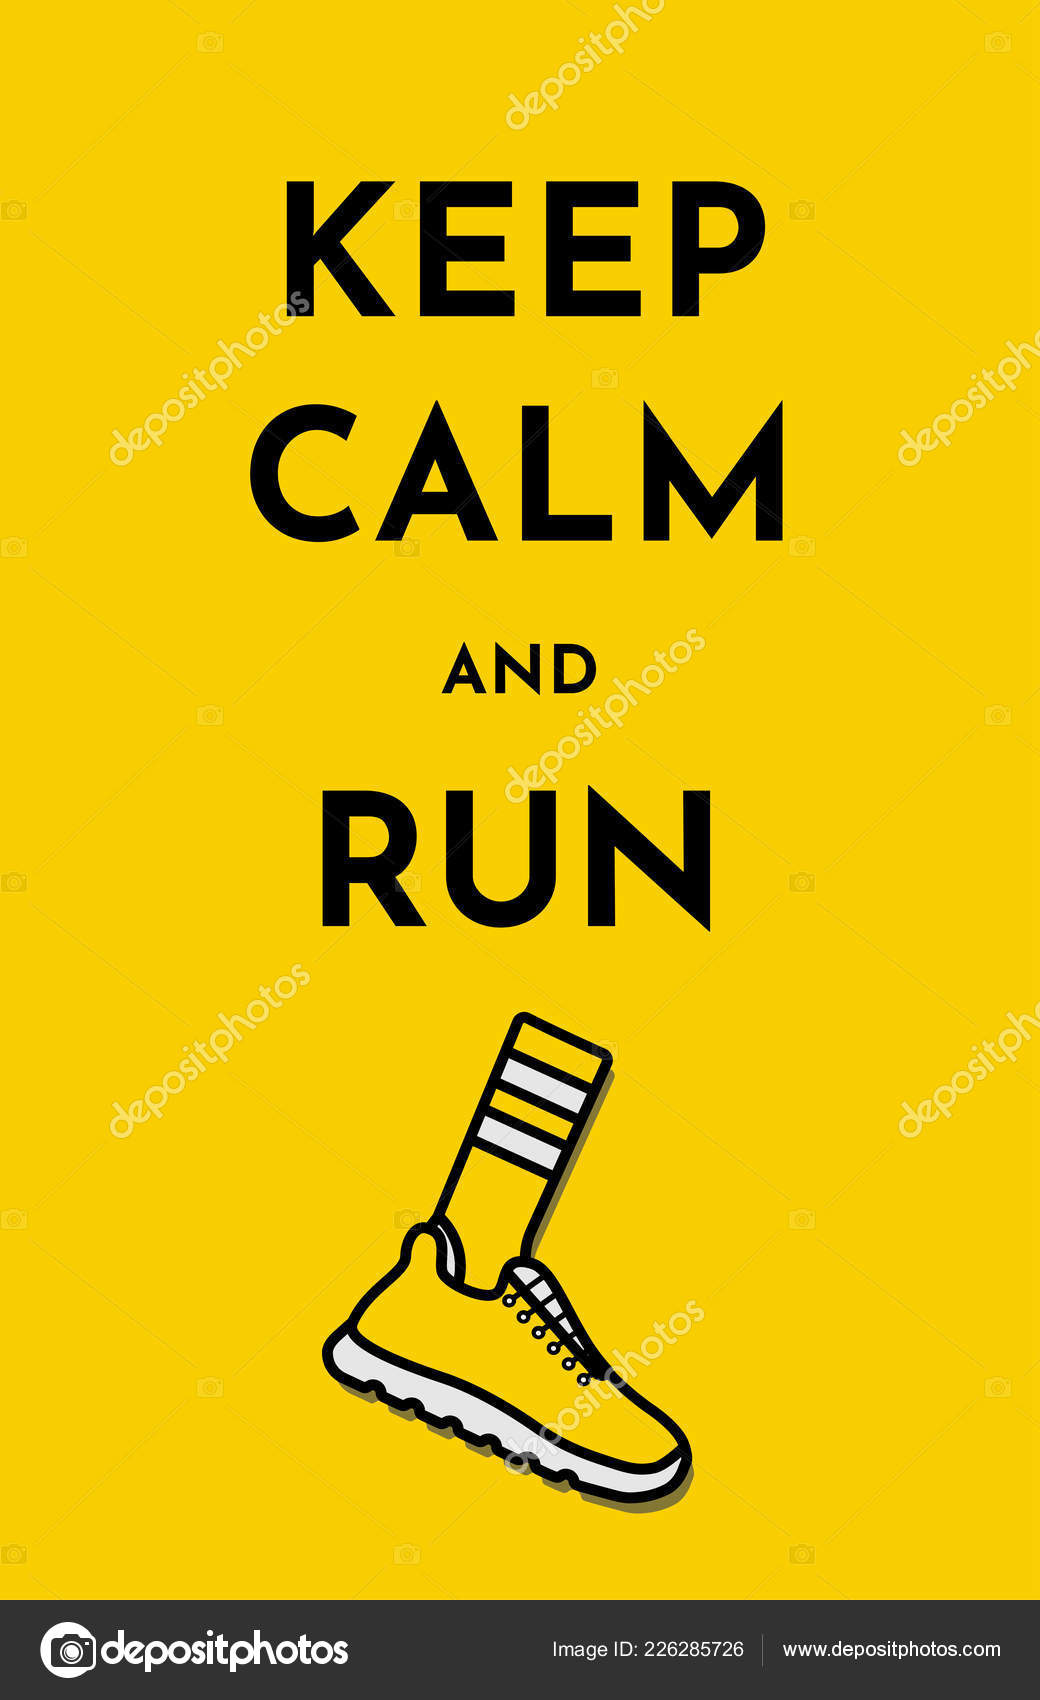 Gelbe Karte Lustig.Vector Illustration Funny Card With Text Keep Calm And Run